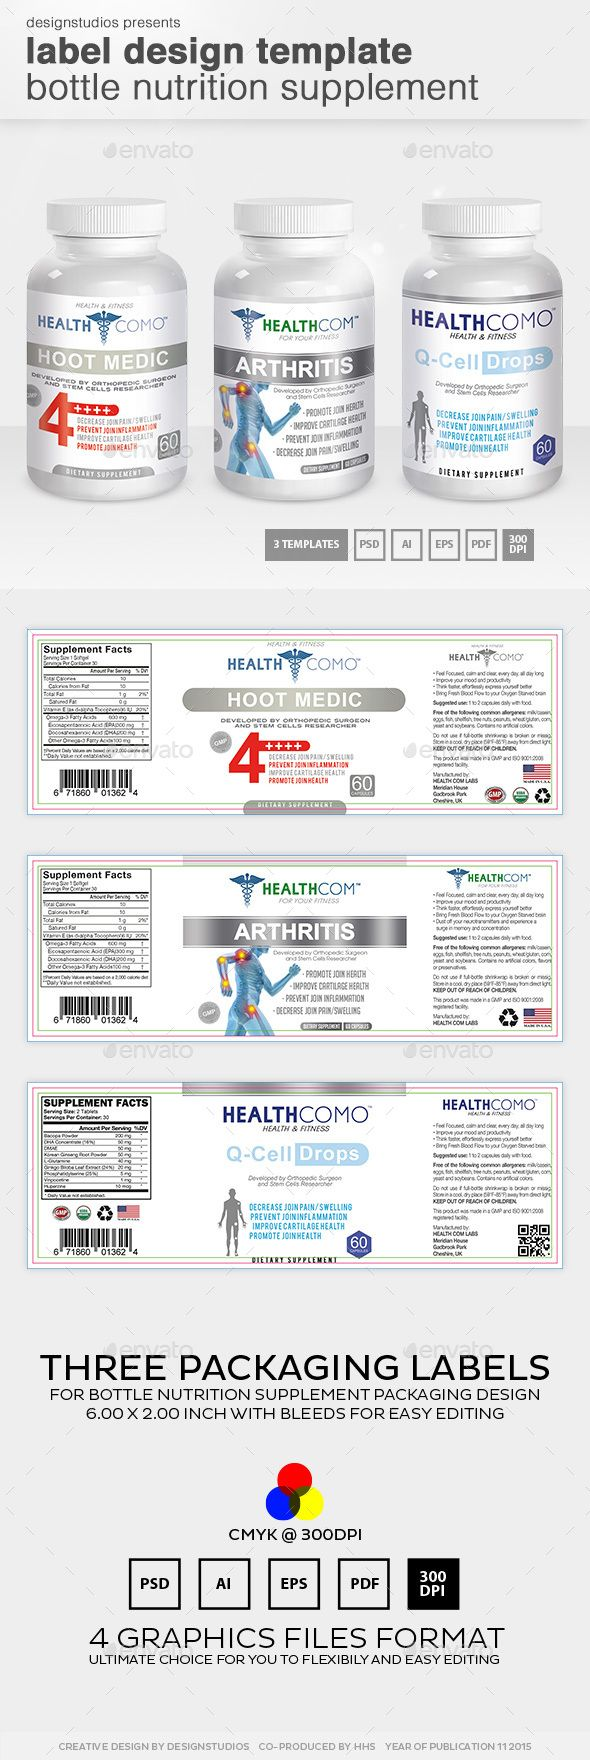 Label Design Template Bottle Nutrition Supplement | Template, Bottle ...